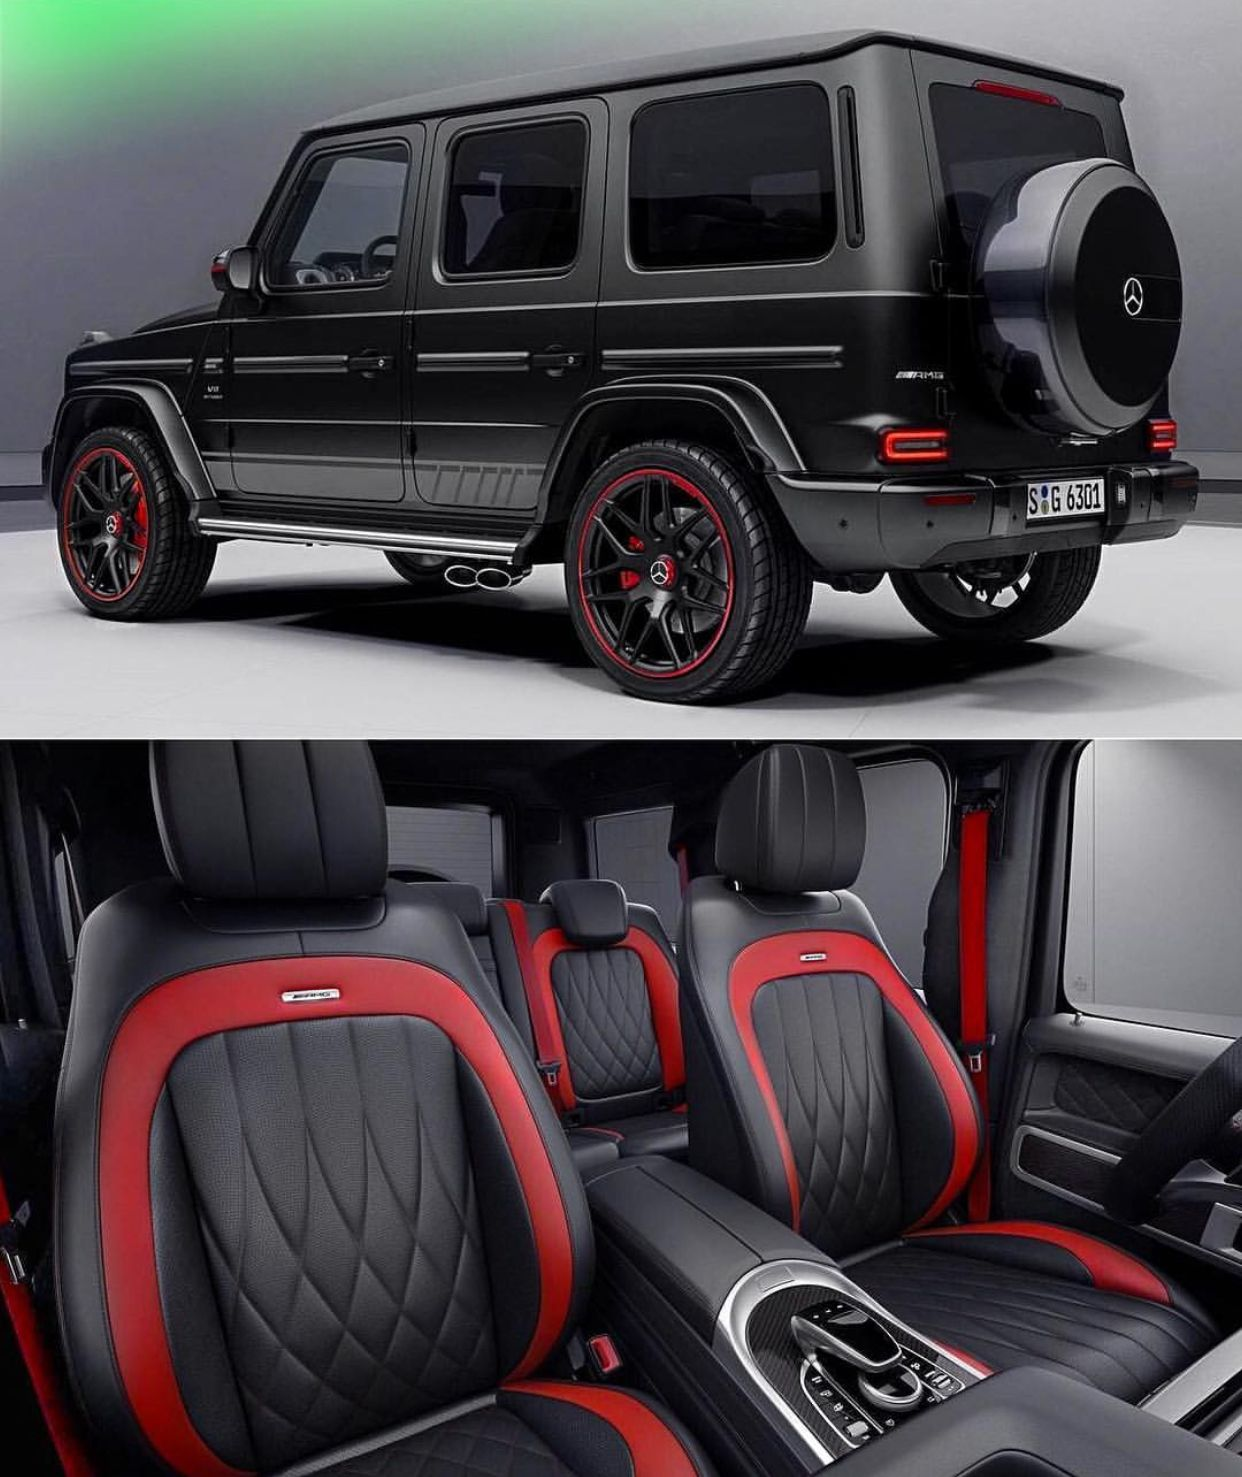 2019 Amg G63 Edition1 With Images Mercedes Suv Mercedes Car